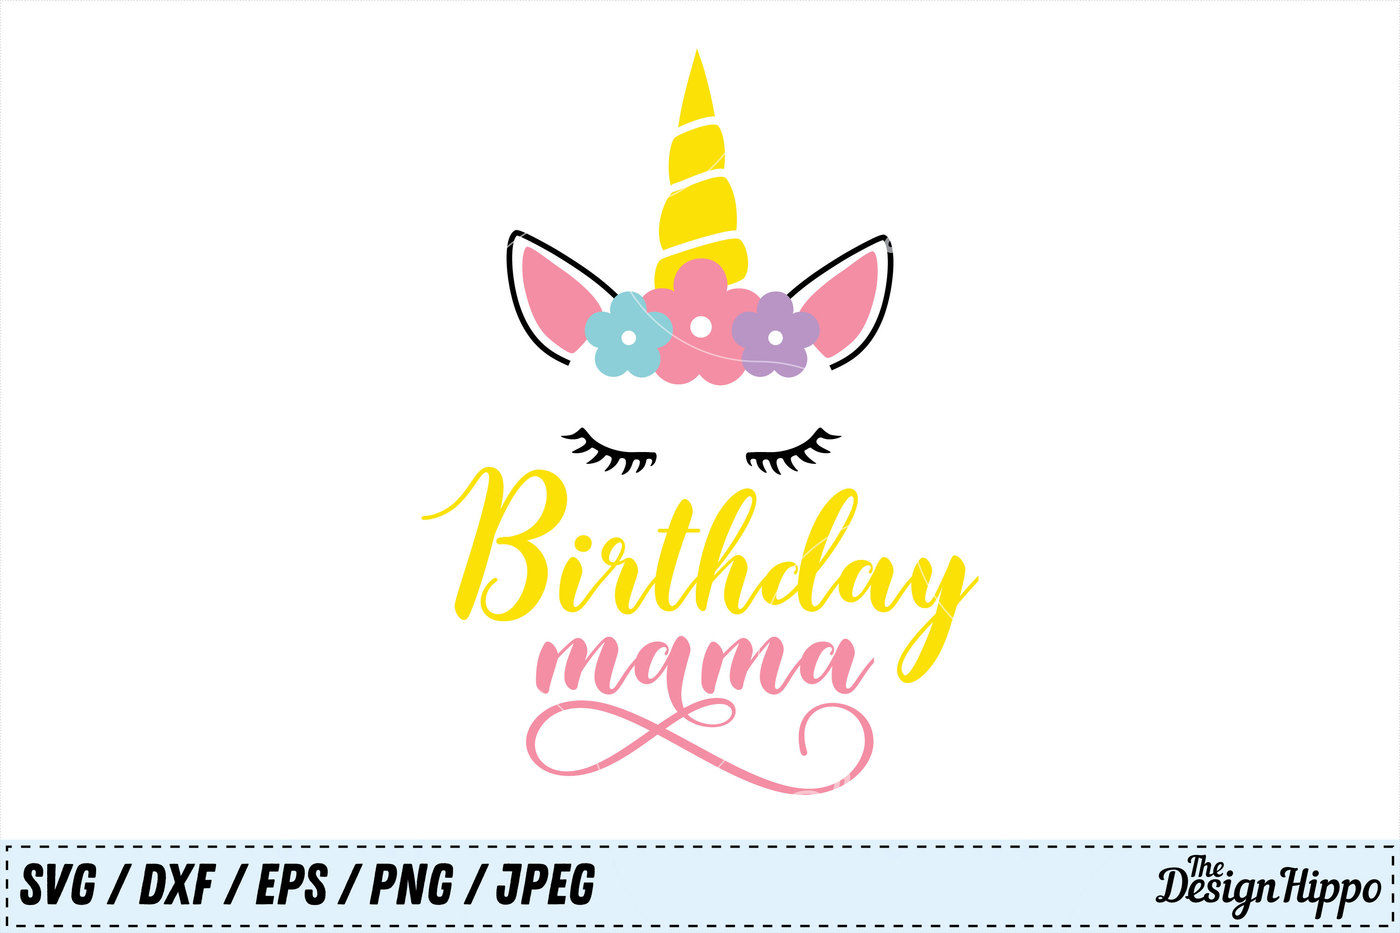 Birthday Mama Svg Birthday Svg Unicorn Svg Mom Svg Png Dxf